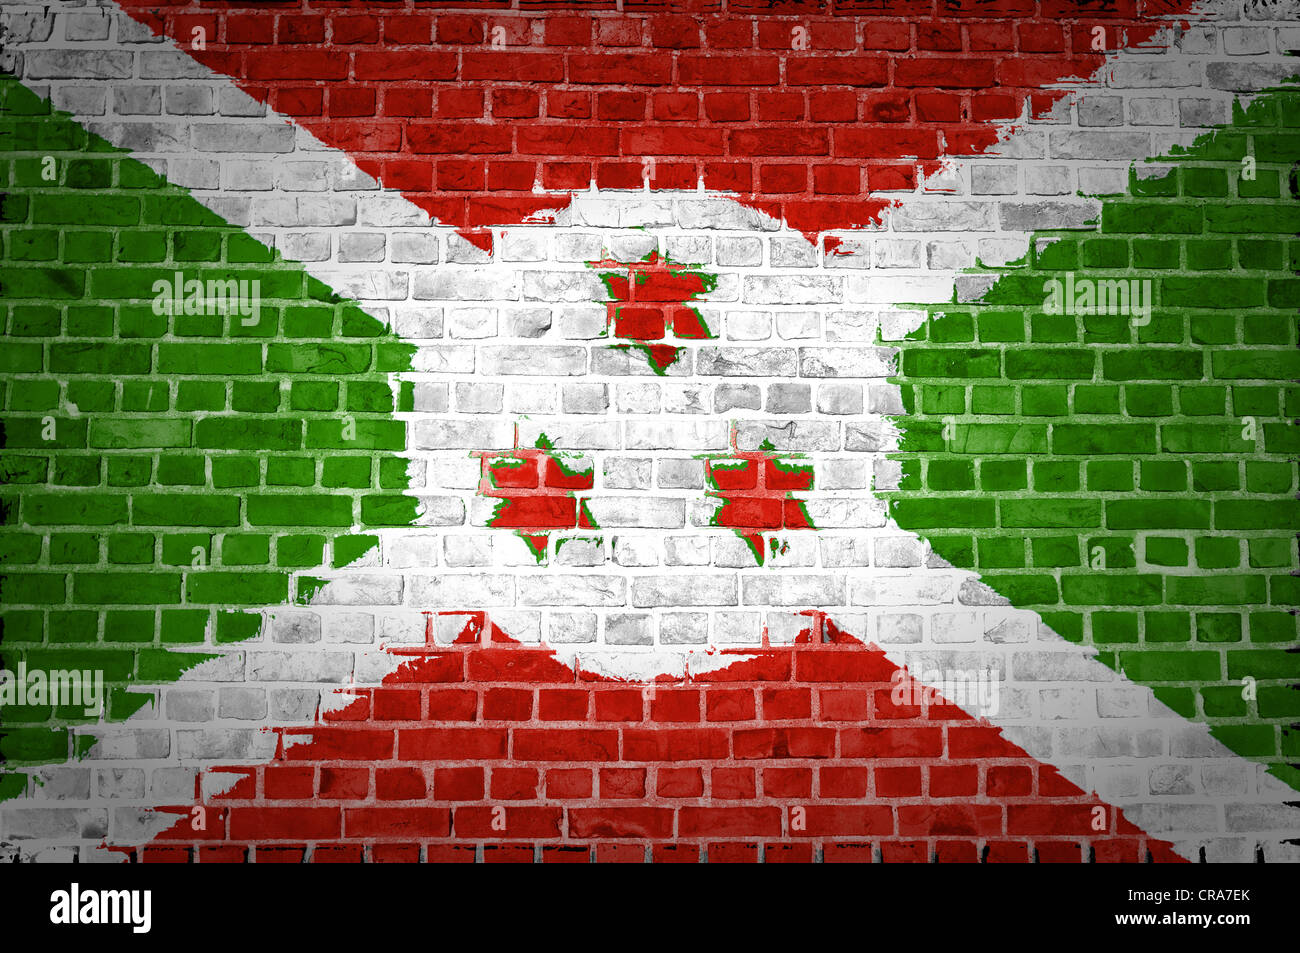 An image of the Burundi flag painted on a brick wall in an urban location - Stock Image